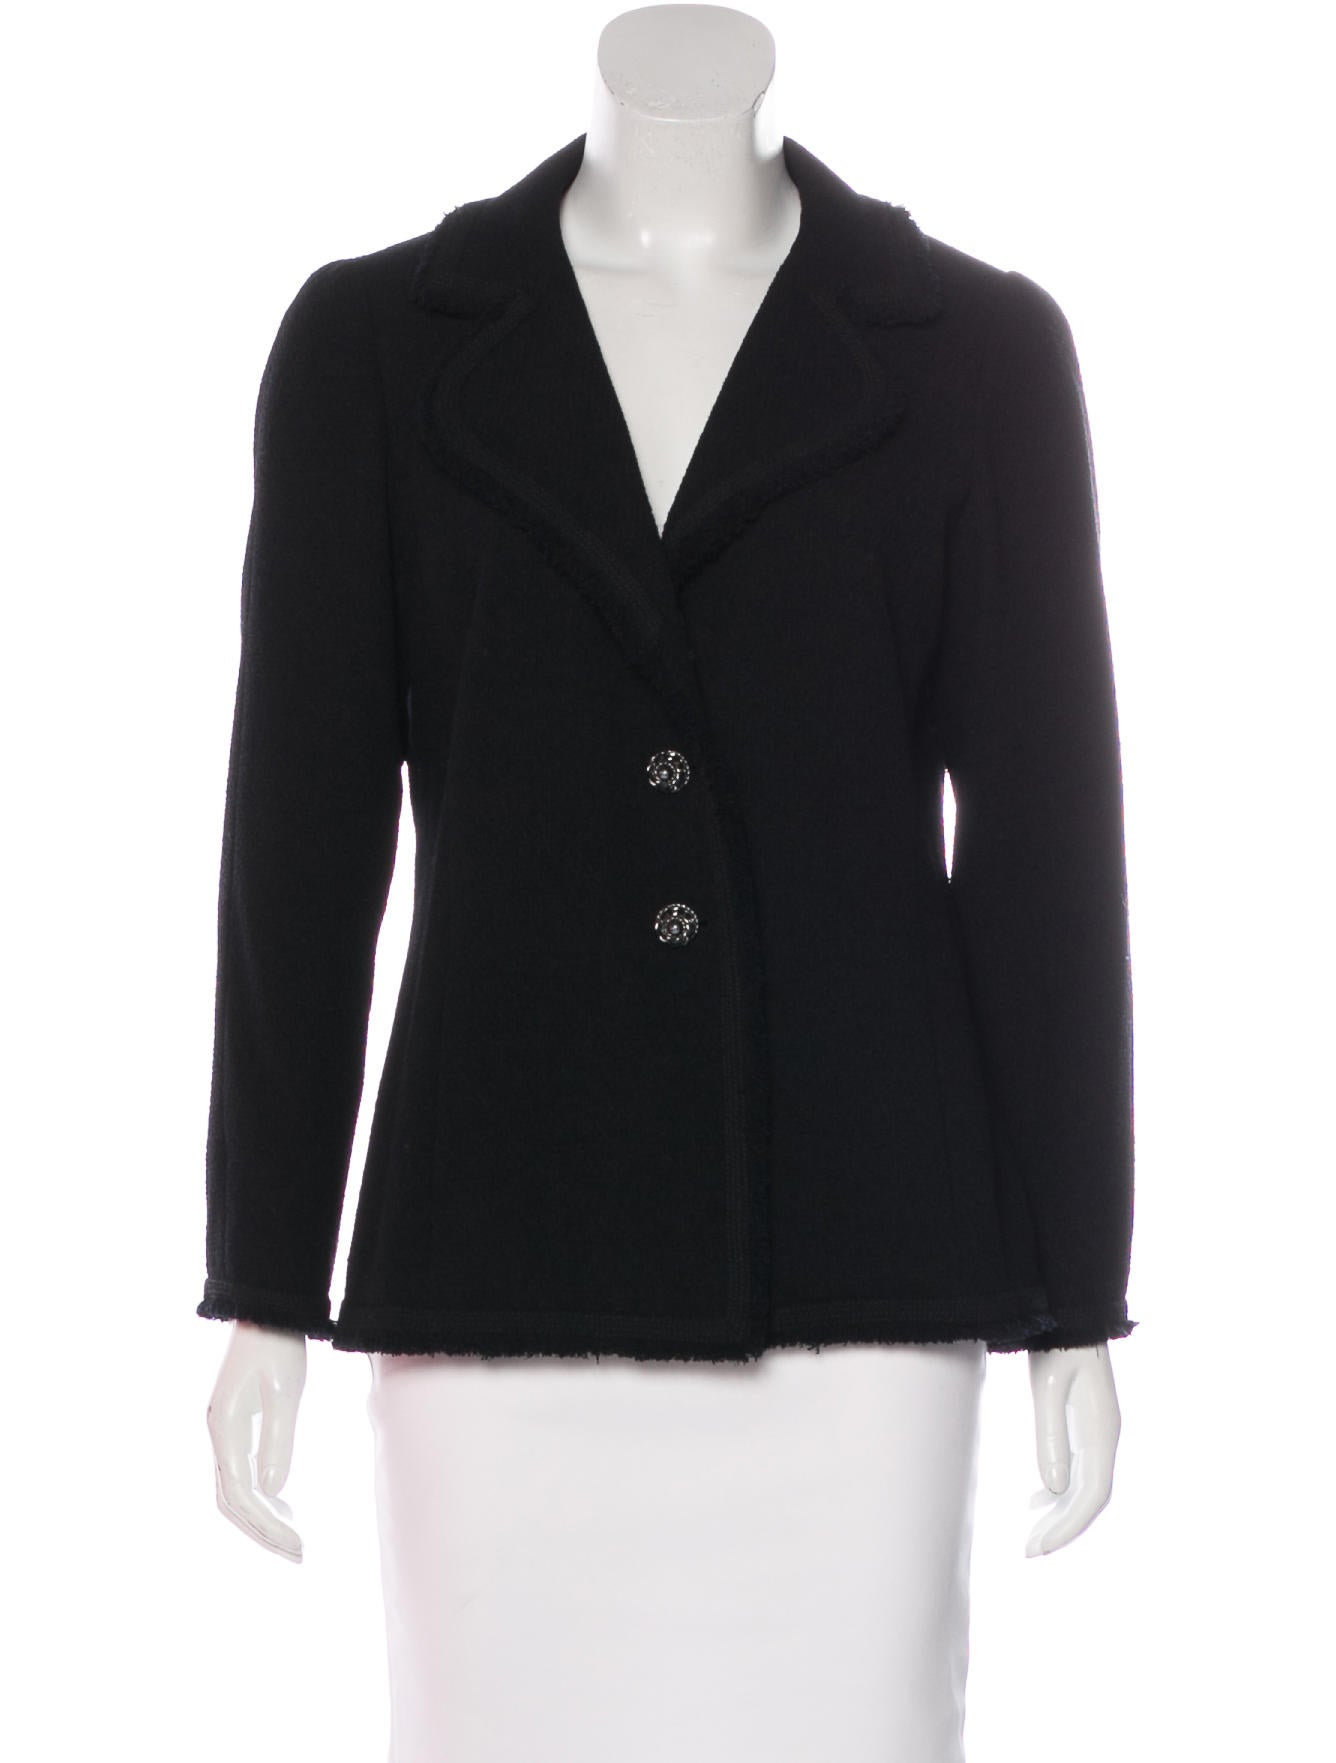 You searched for: tweed wool blazer! Etsy is the home to thousands of handmade, vintage, and one-of-a-kind products and gifts related to your search. No matter what you're looking for or where you are in the world, our global marketplace of sellers can help you find unique and affordable options.